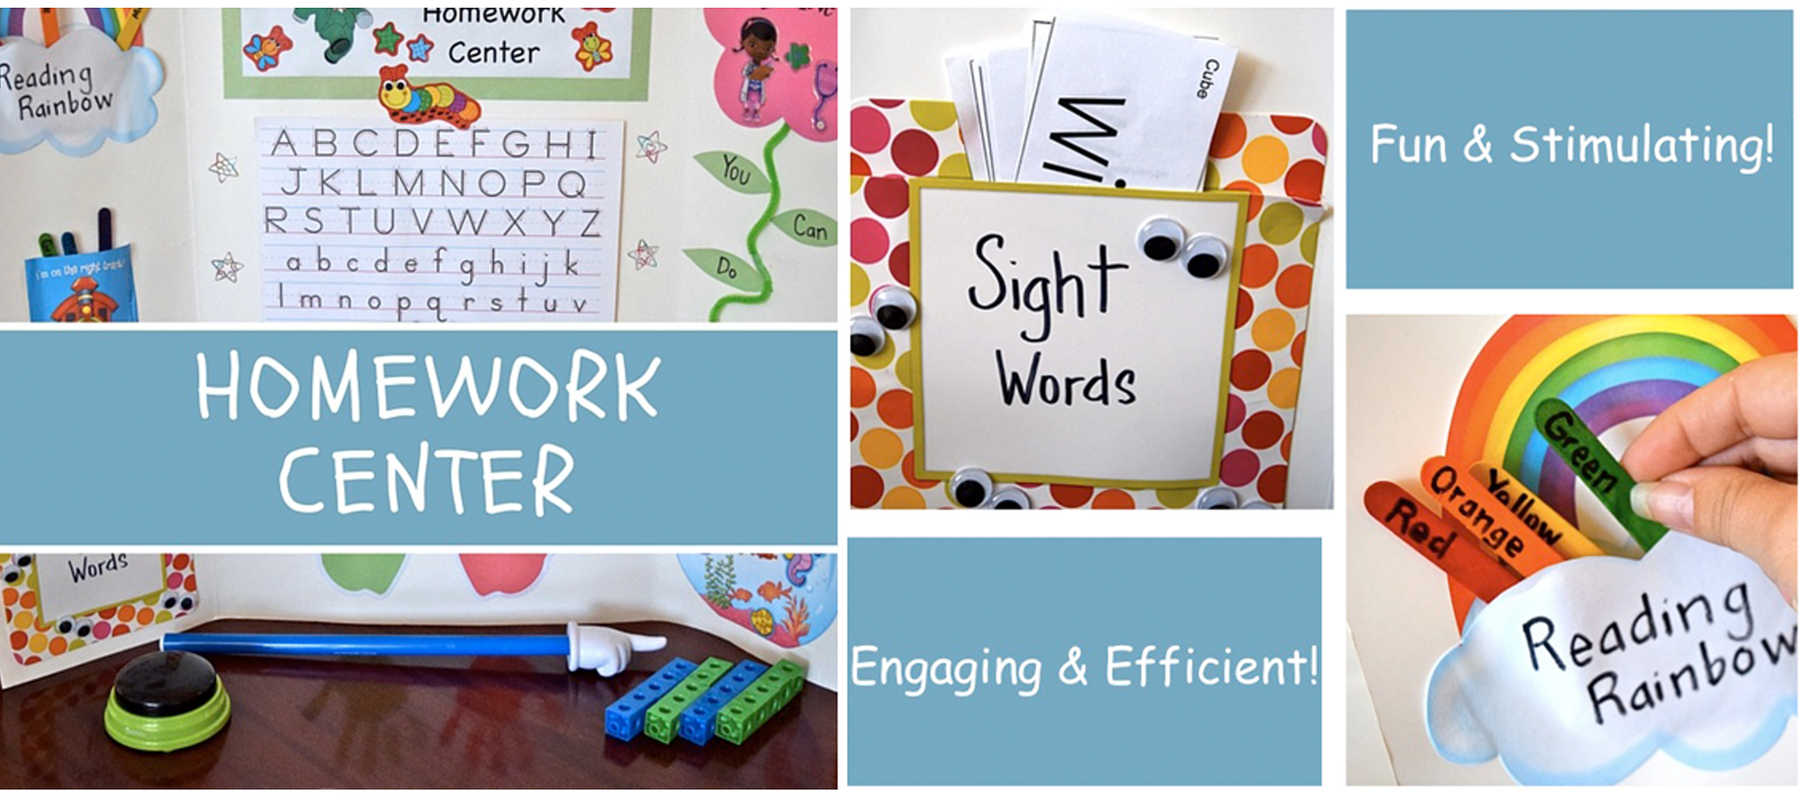 How To Create The Perfect Homework Center by Cristina Margolis